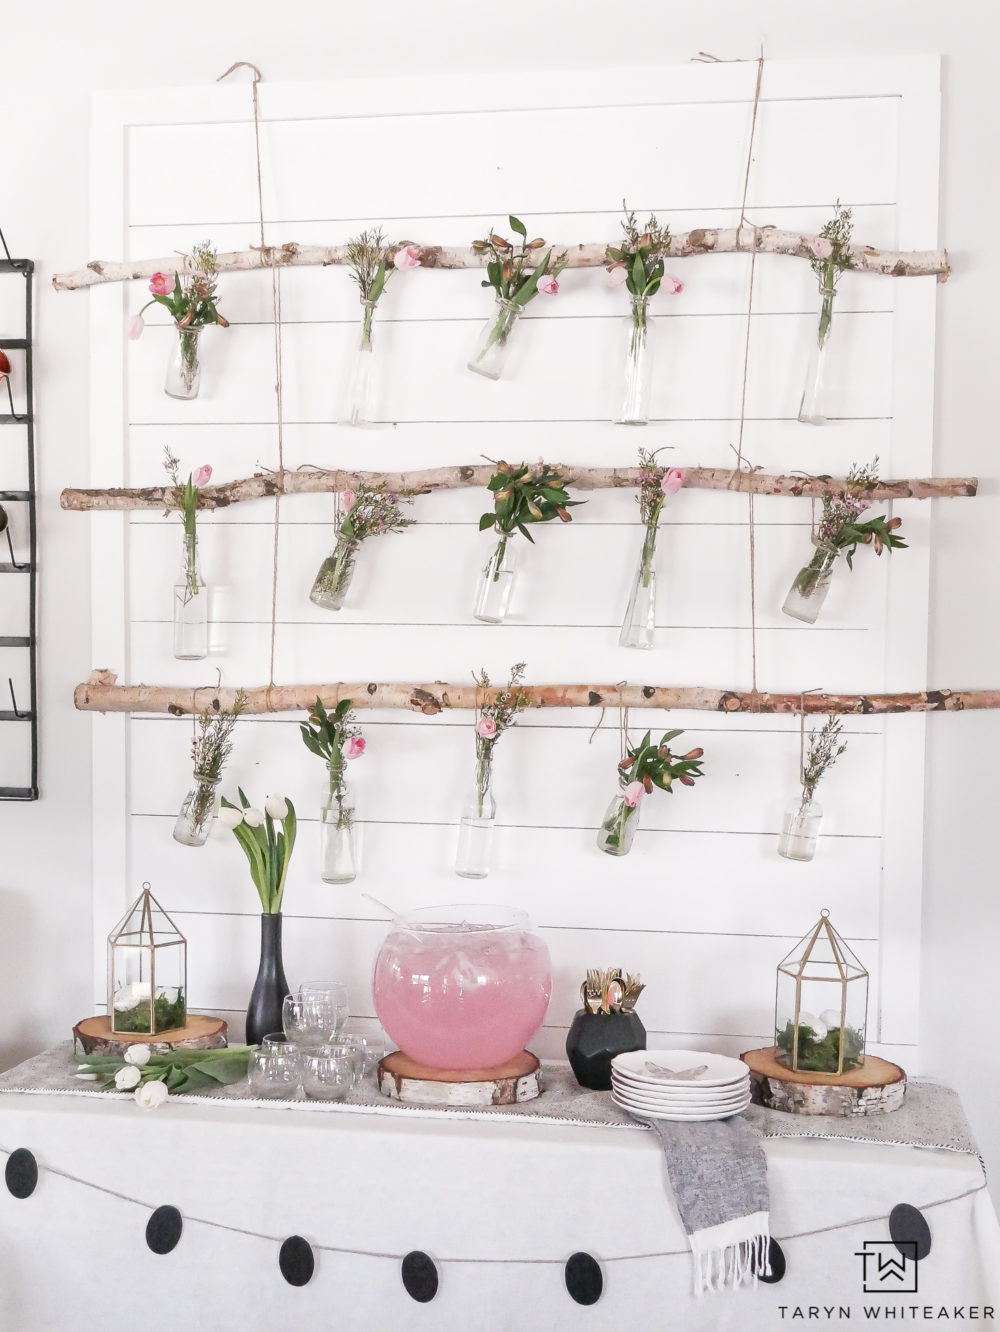 Create this Rustic Hanging Flower Display using birch branches and an eclectic mixture of glass vases! The pink flowers with greenery make it a sweet whimsical flower backdrop for a spring party.